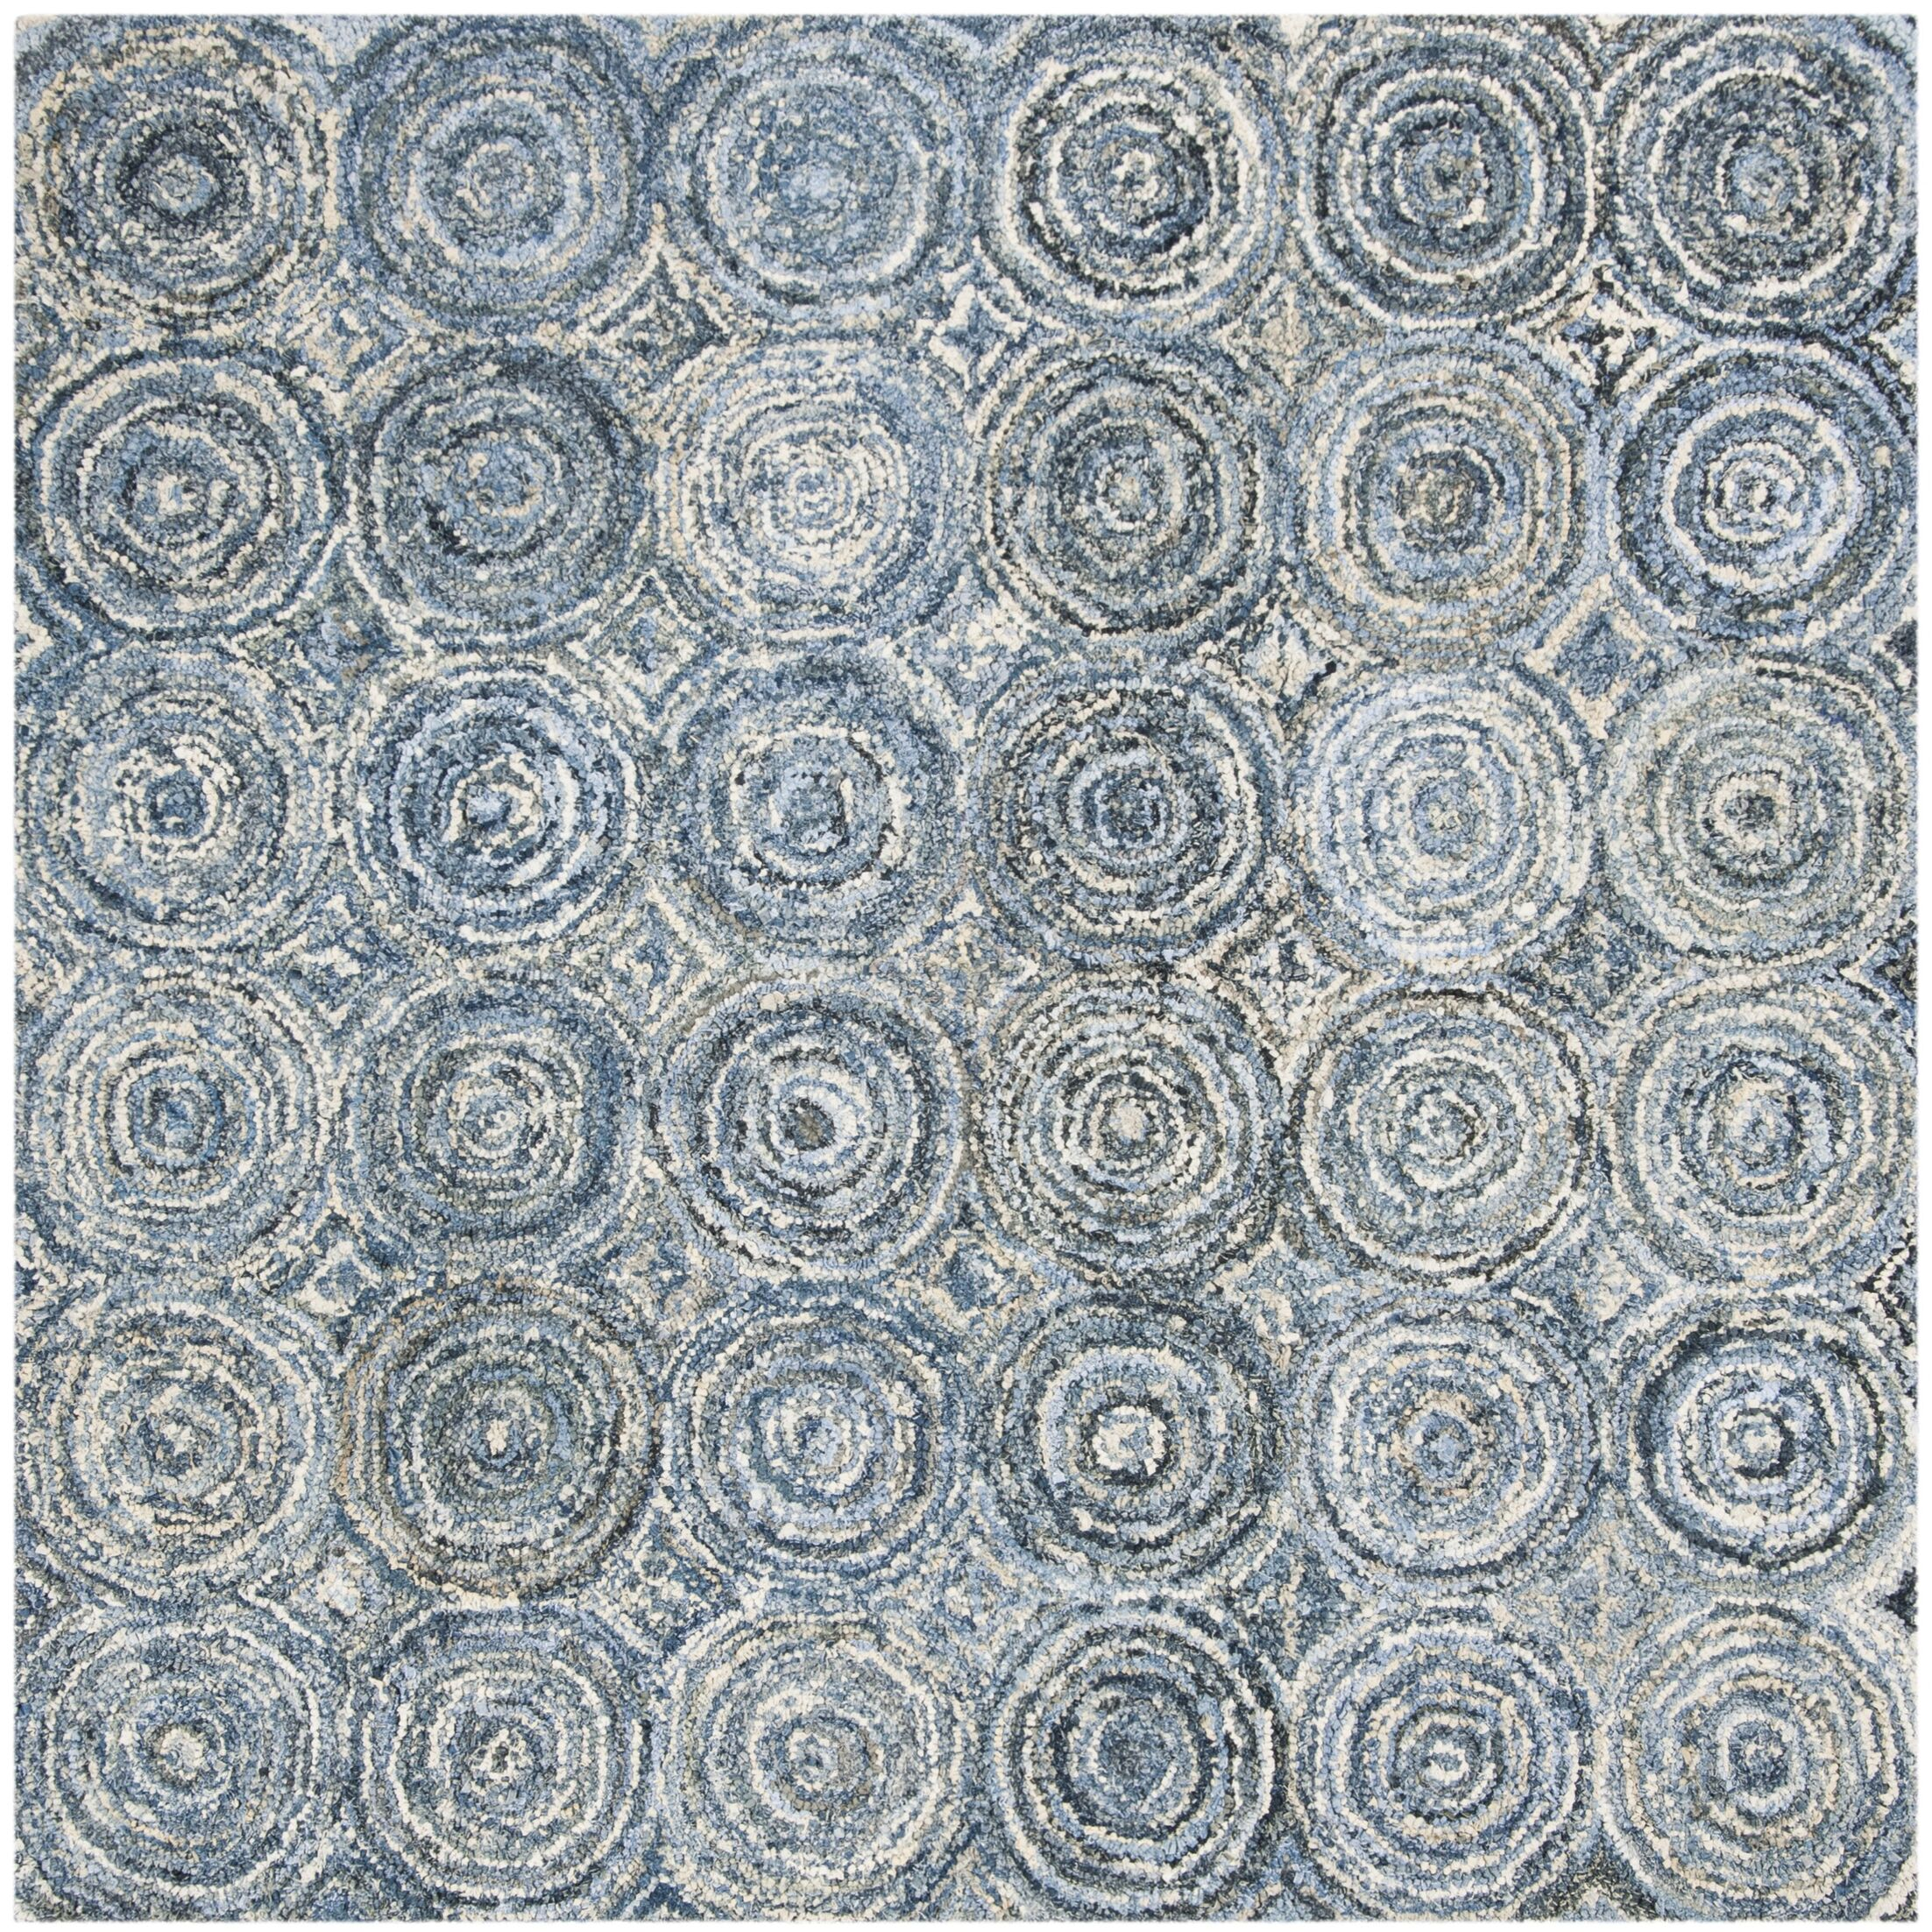 Philip Hand Tufted Cotton Blue Area Rug Rug Size: Square 6'